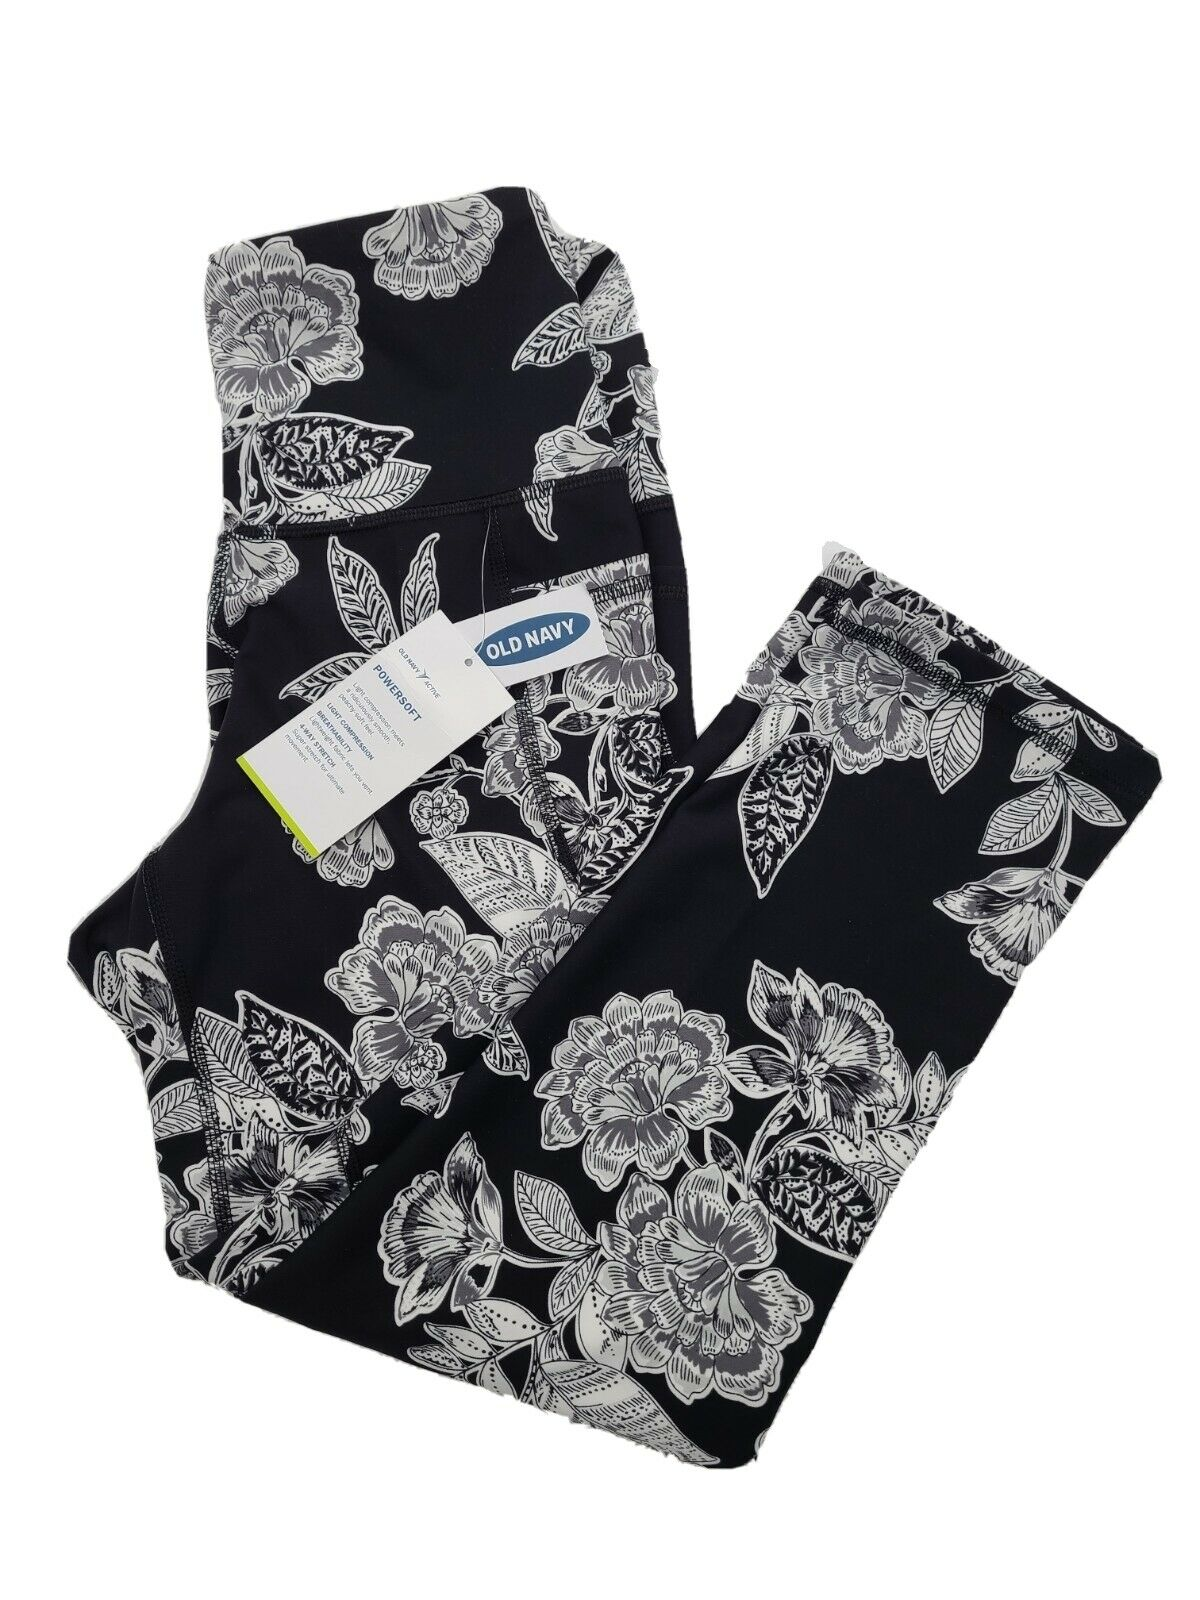 Old Navy Size Small High Rise Crop Black Floral Leggings NWT